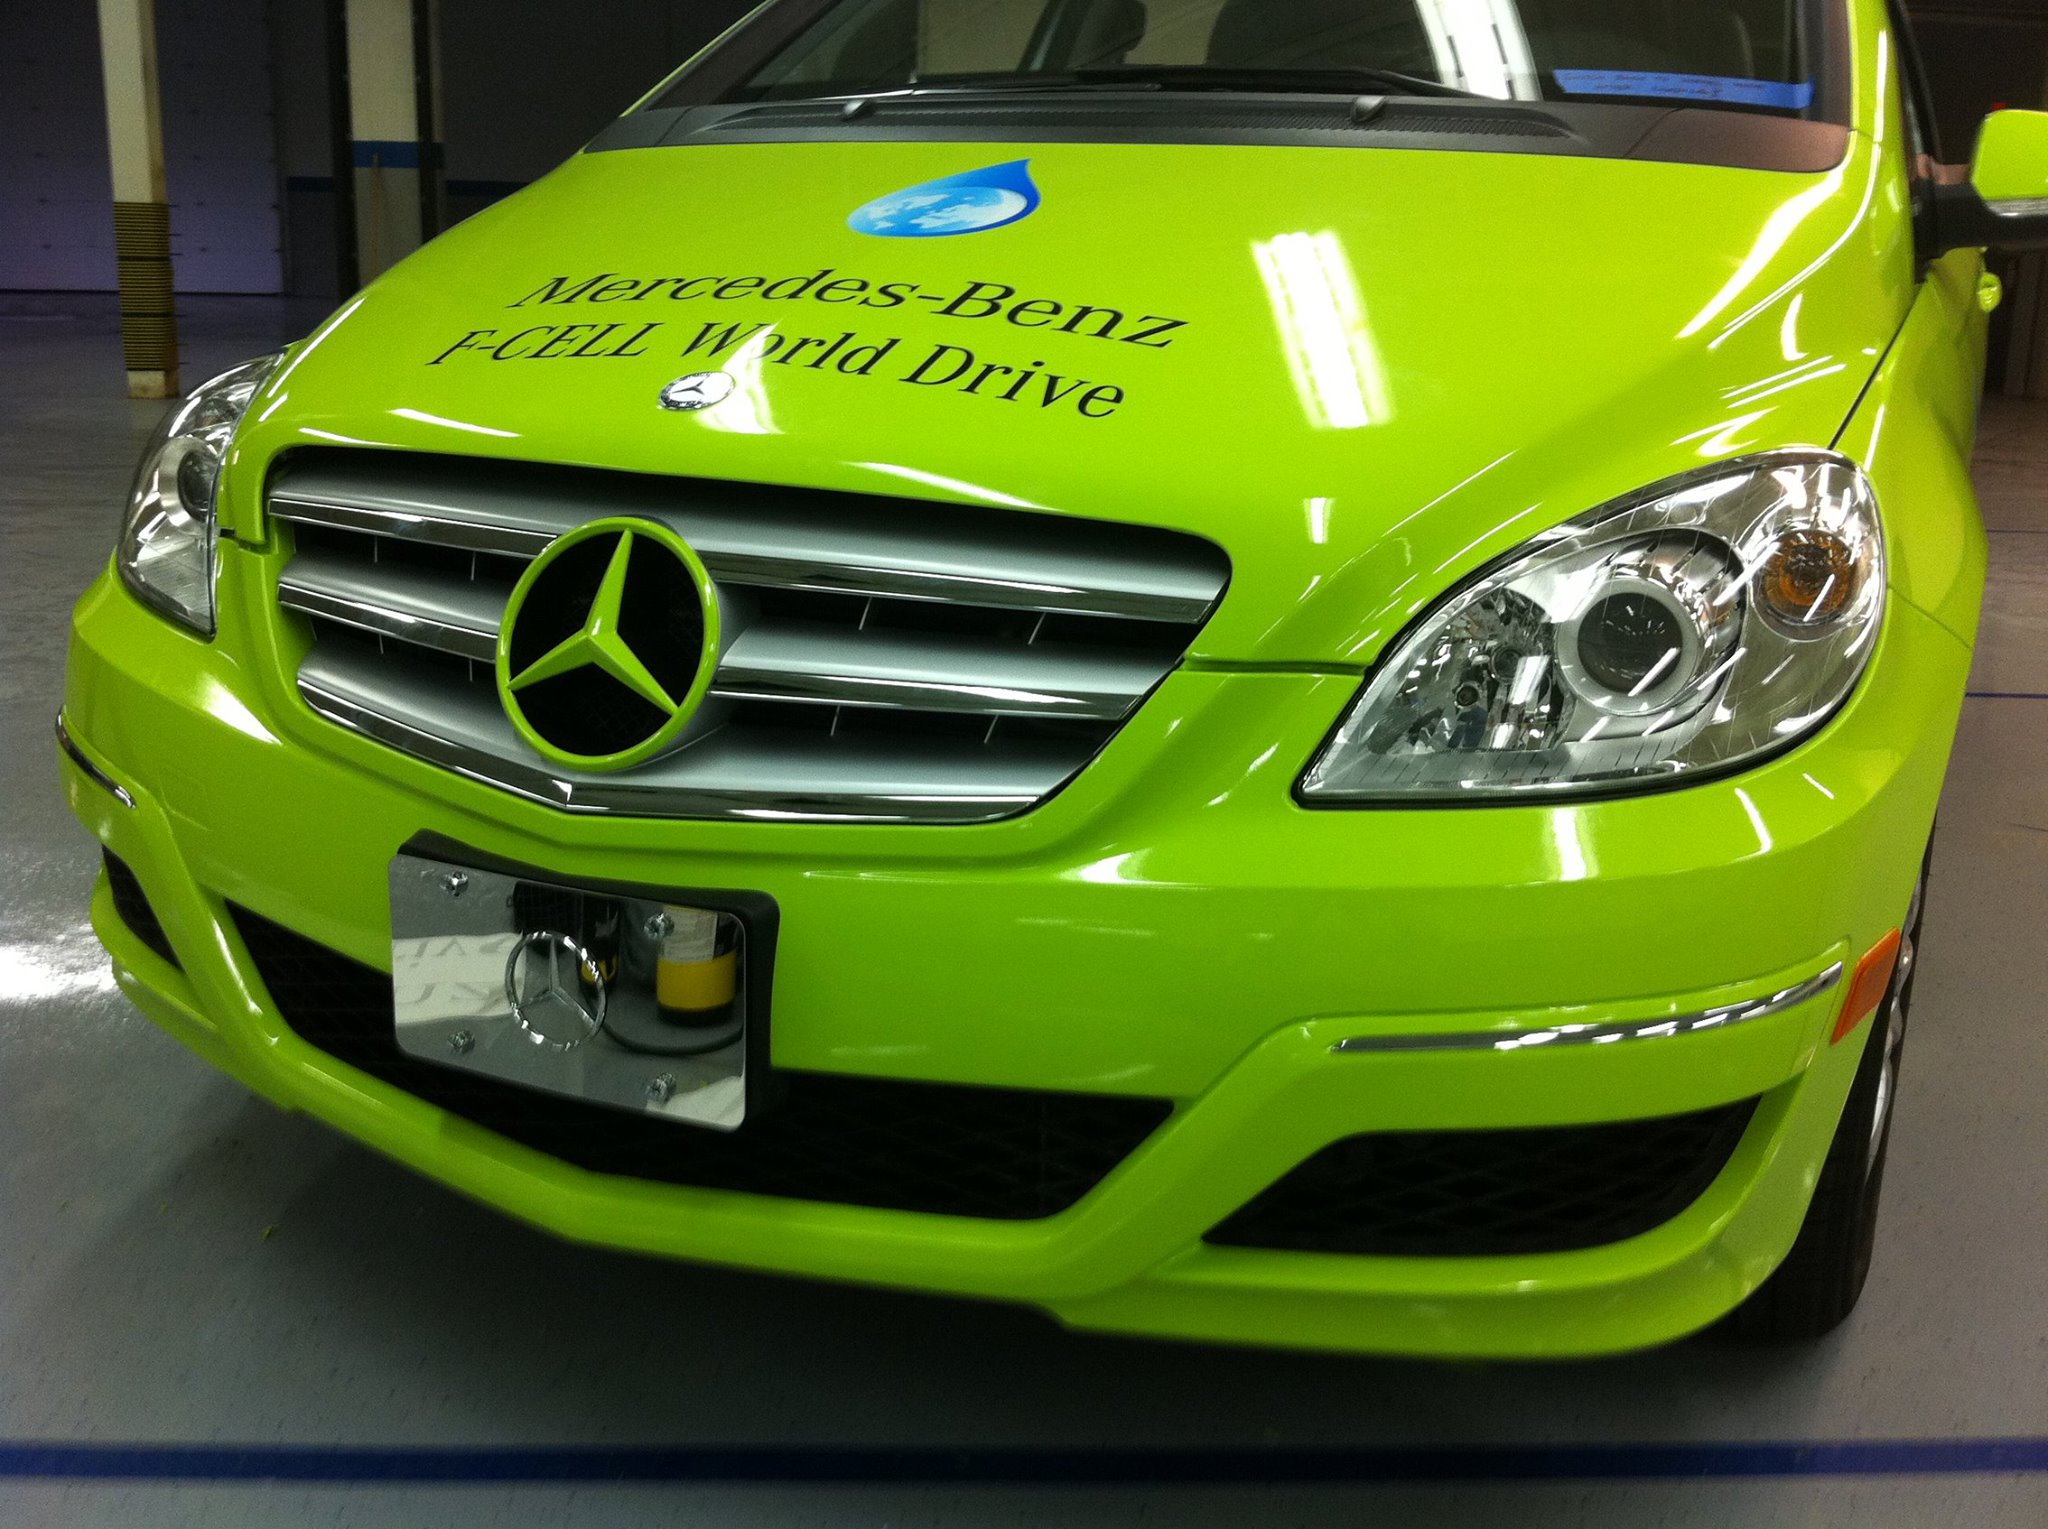 Mercedes Benz Wrap - Vehicle Color Change Wrap, Front - Novi, MI